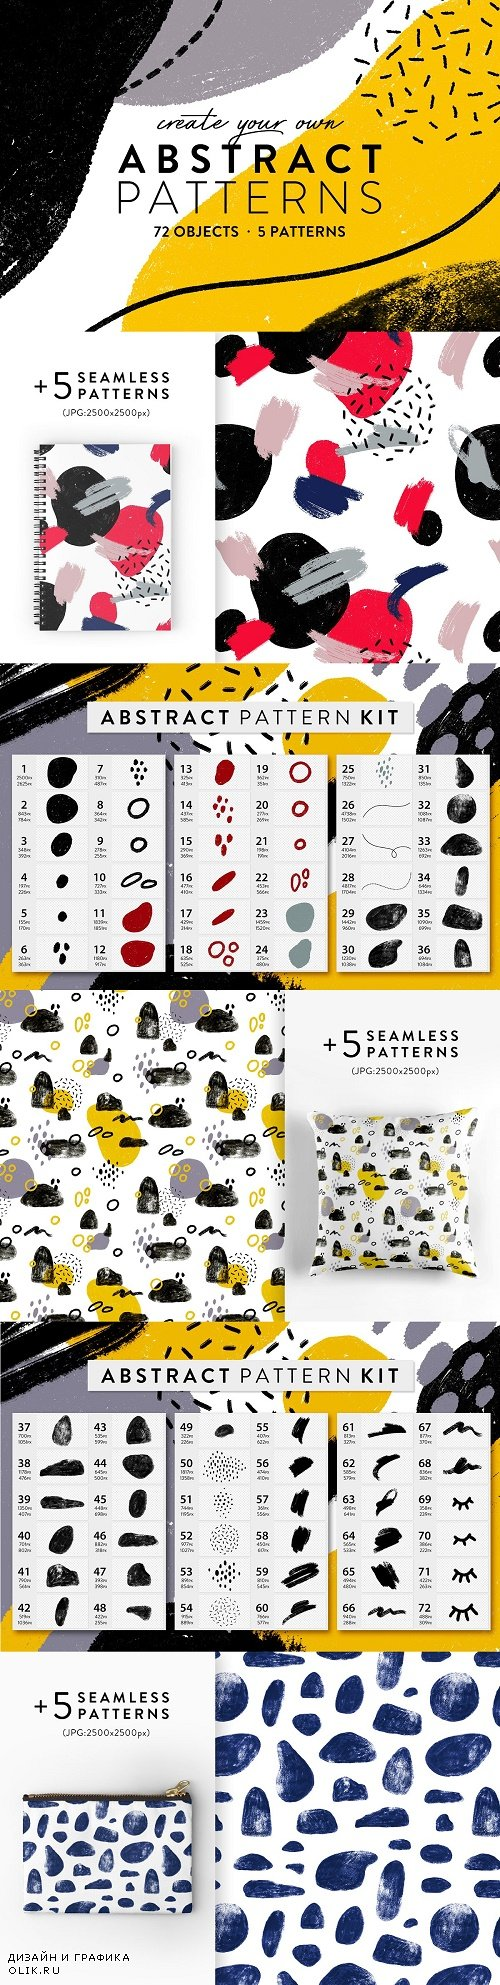 Abstract Pattern Kit - 3719851